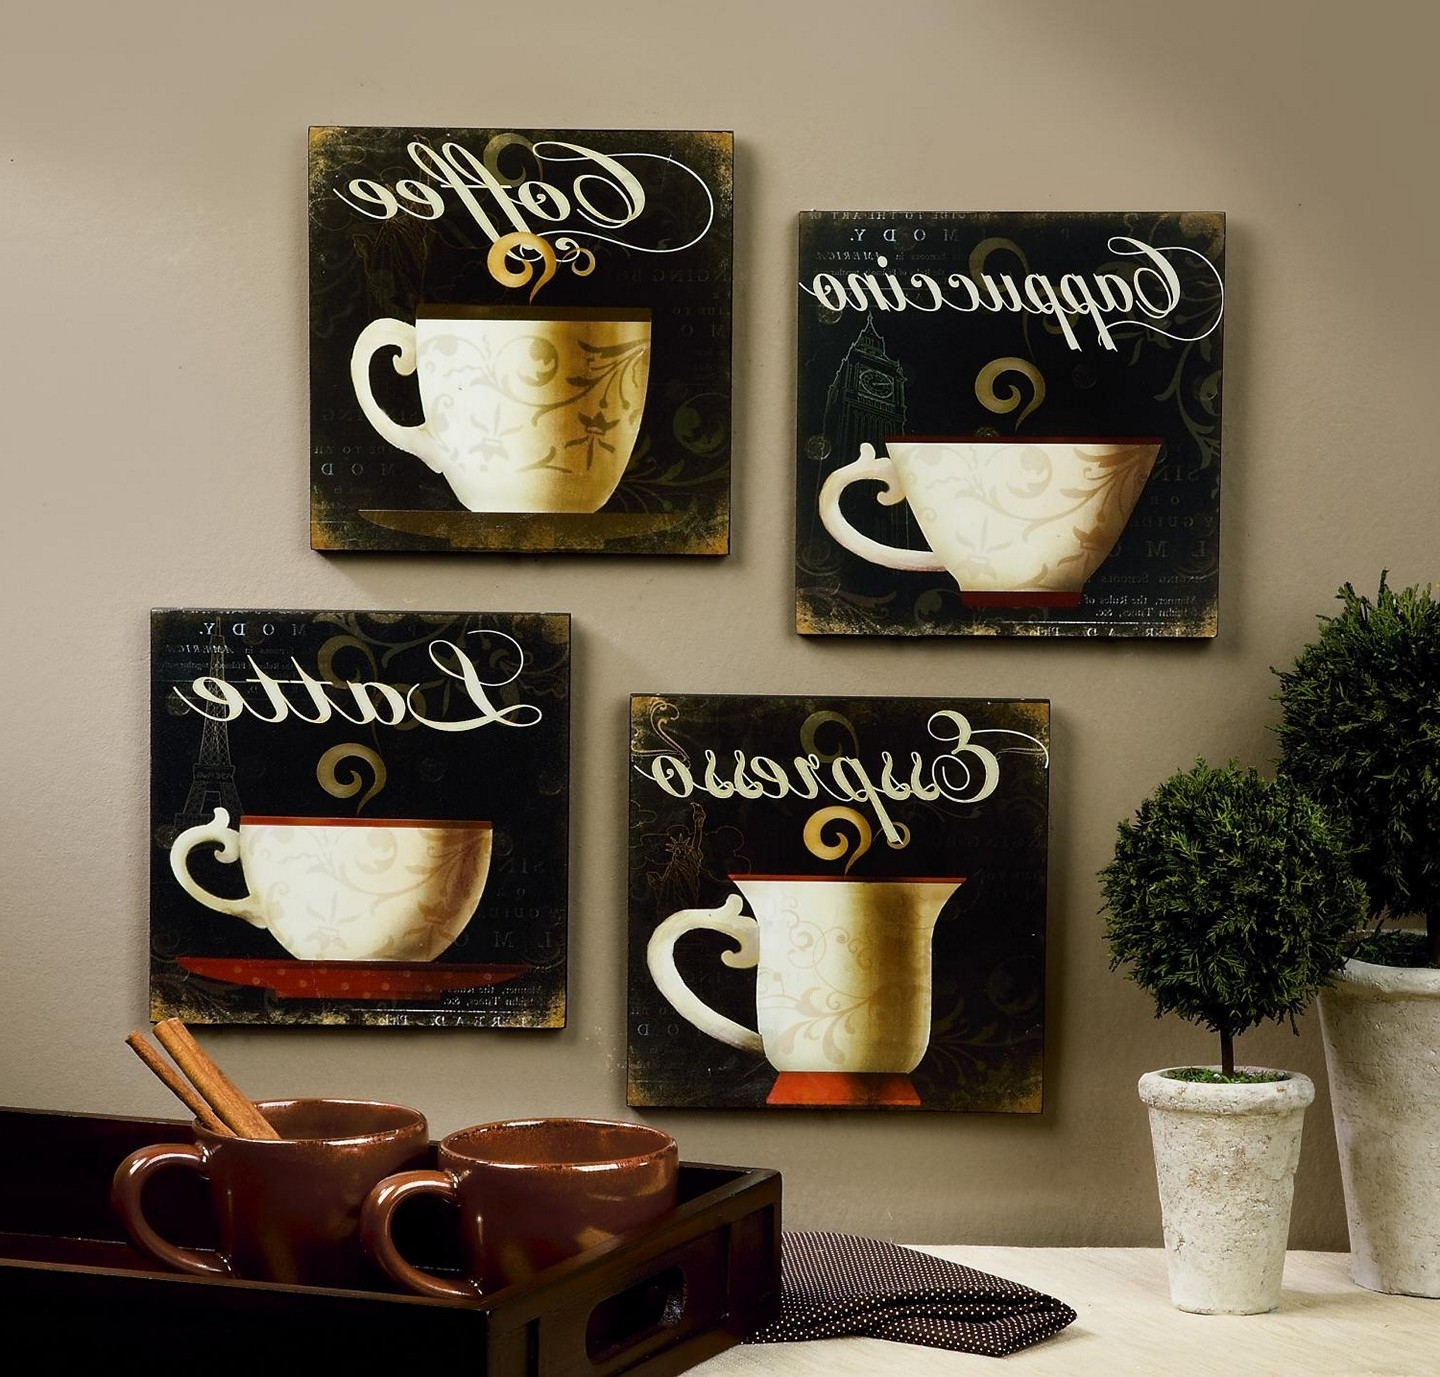 Most Popular Kitchen Themes Ideas Cute Kitchen Decorating Themes Coffee Metal Regarding Metal Wall Art Coffee Theme (View 2 of 15)